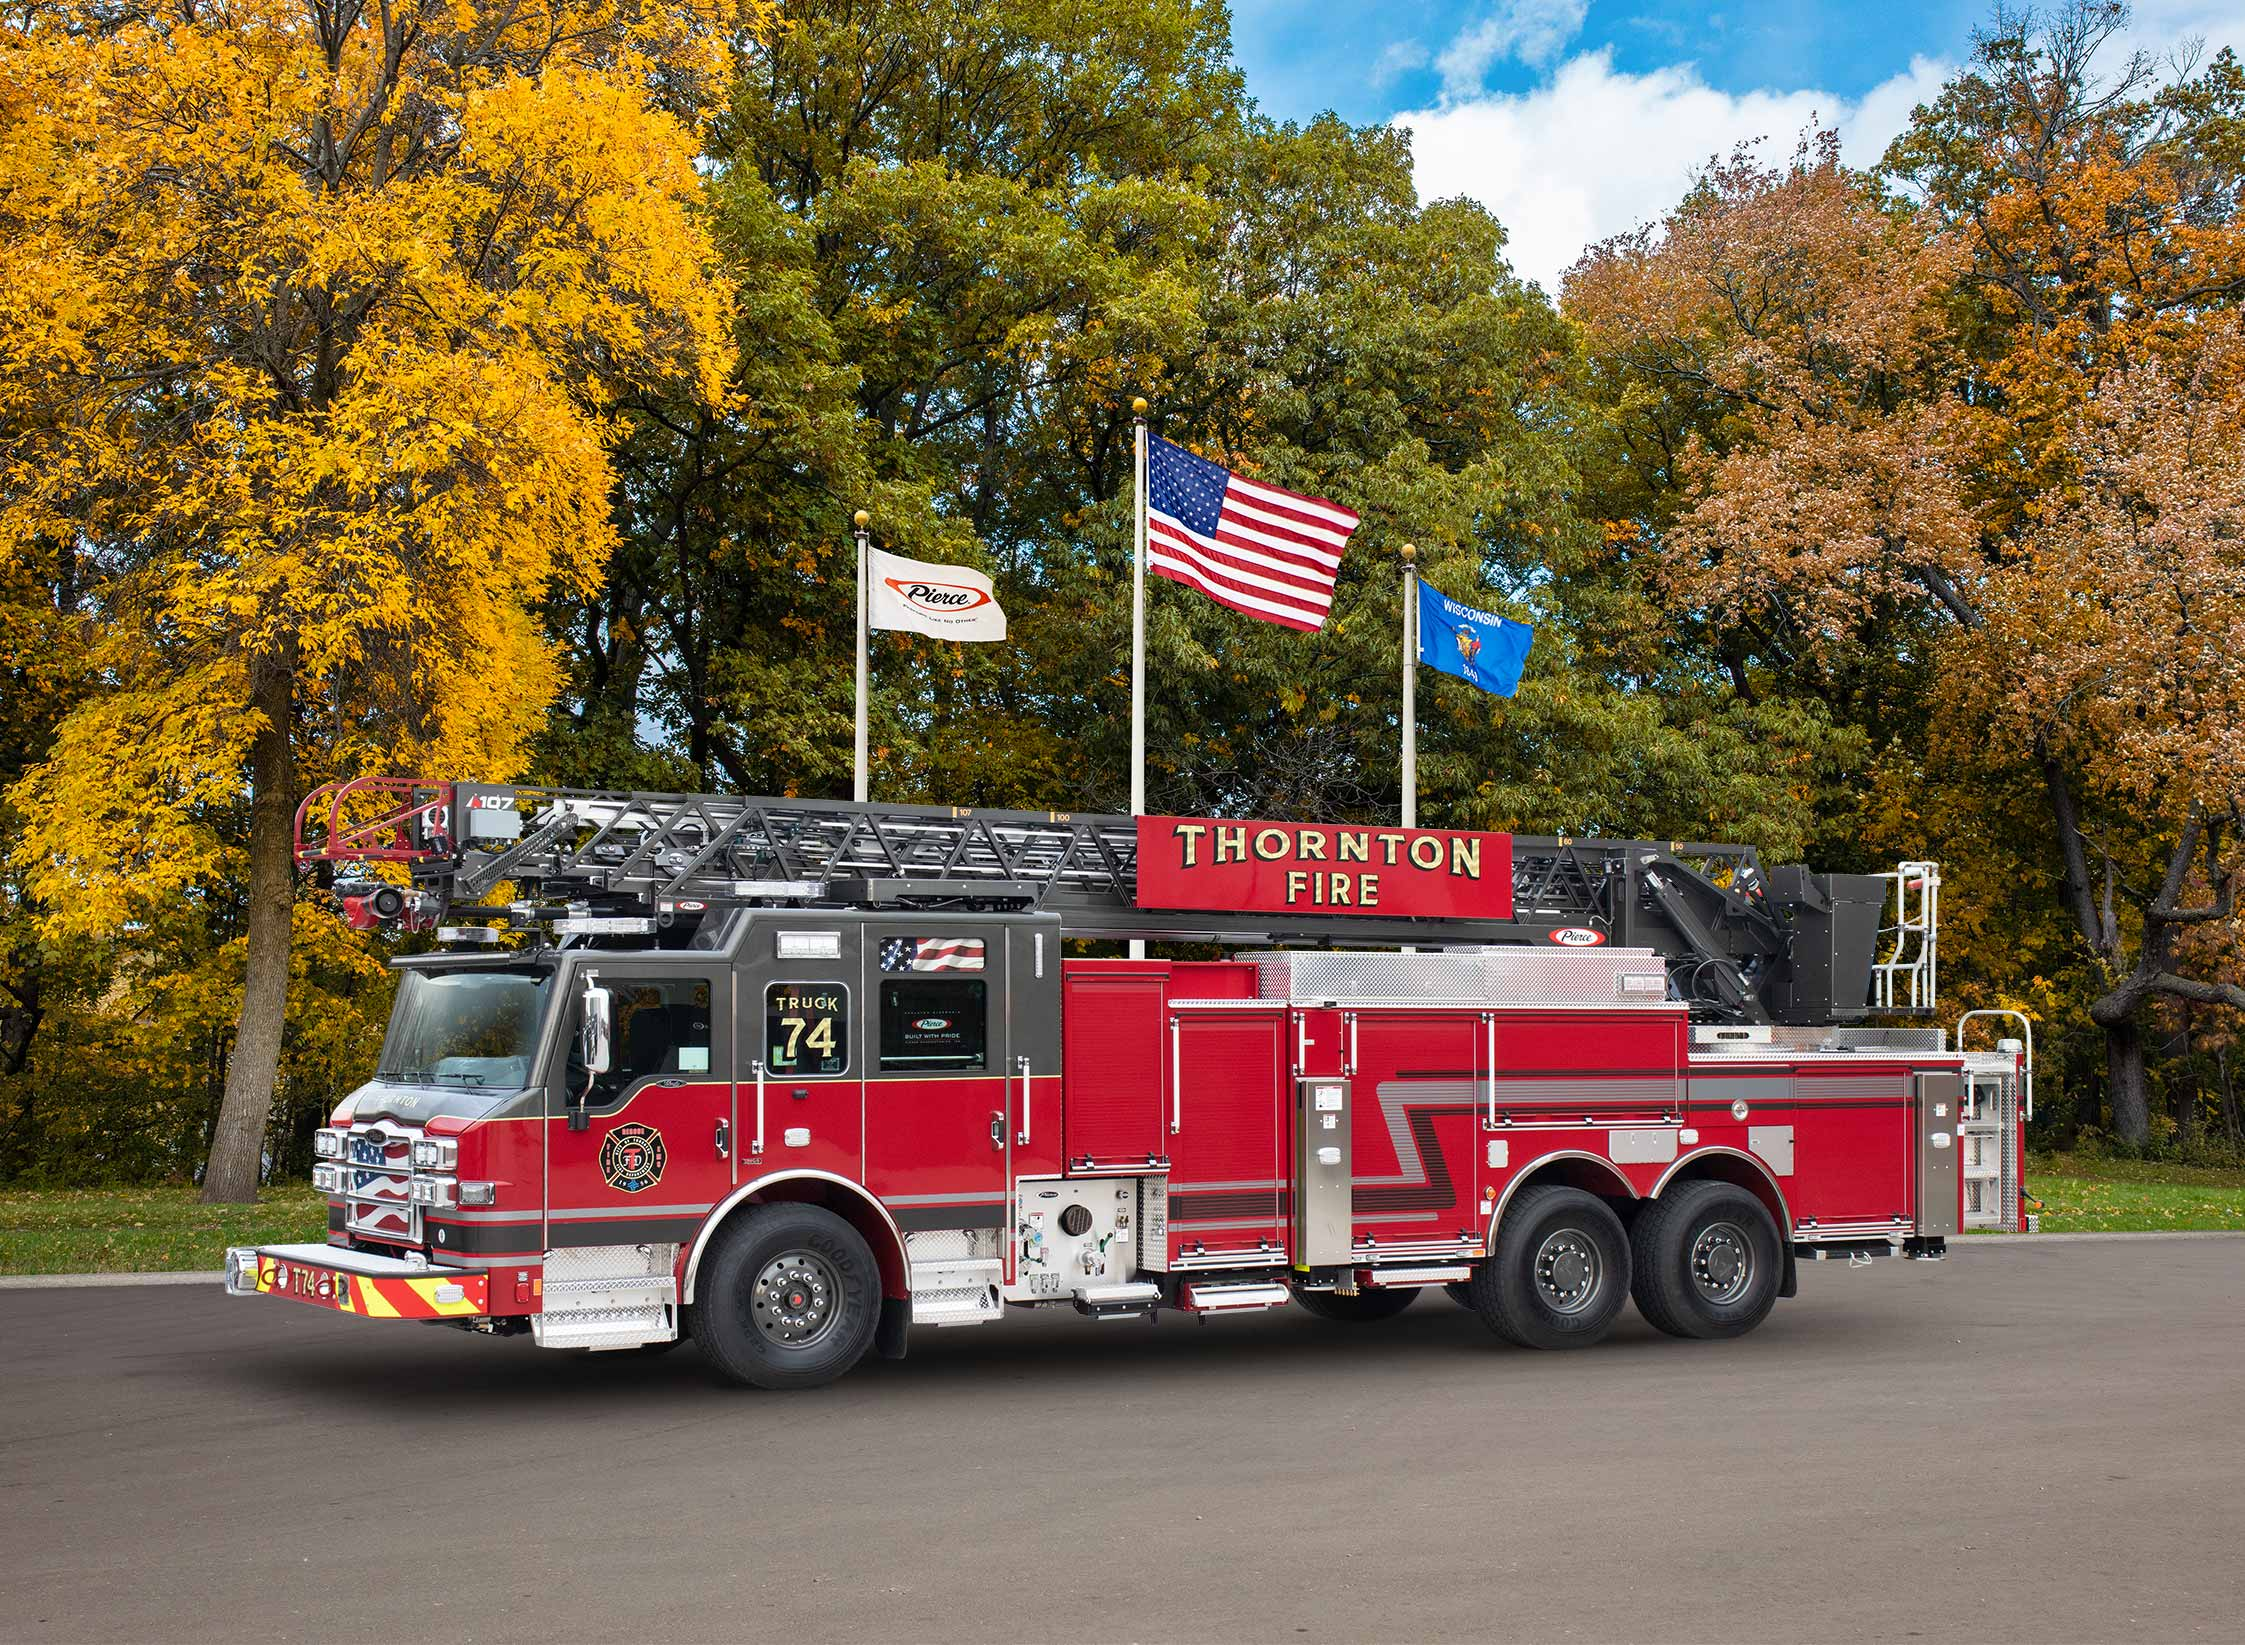 City of Thornton Fire Department - Aerial